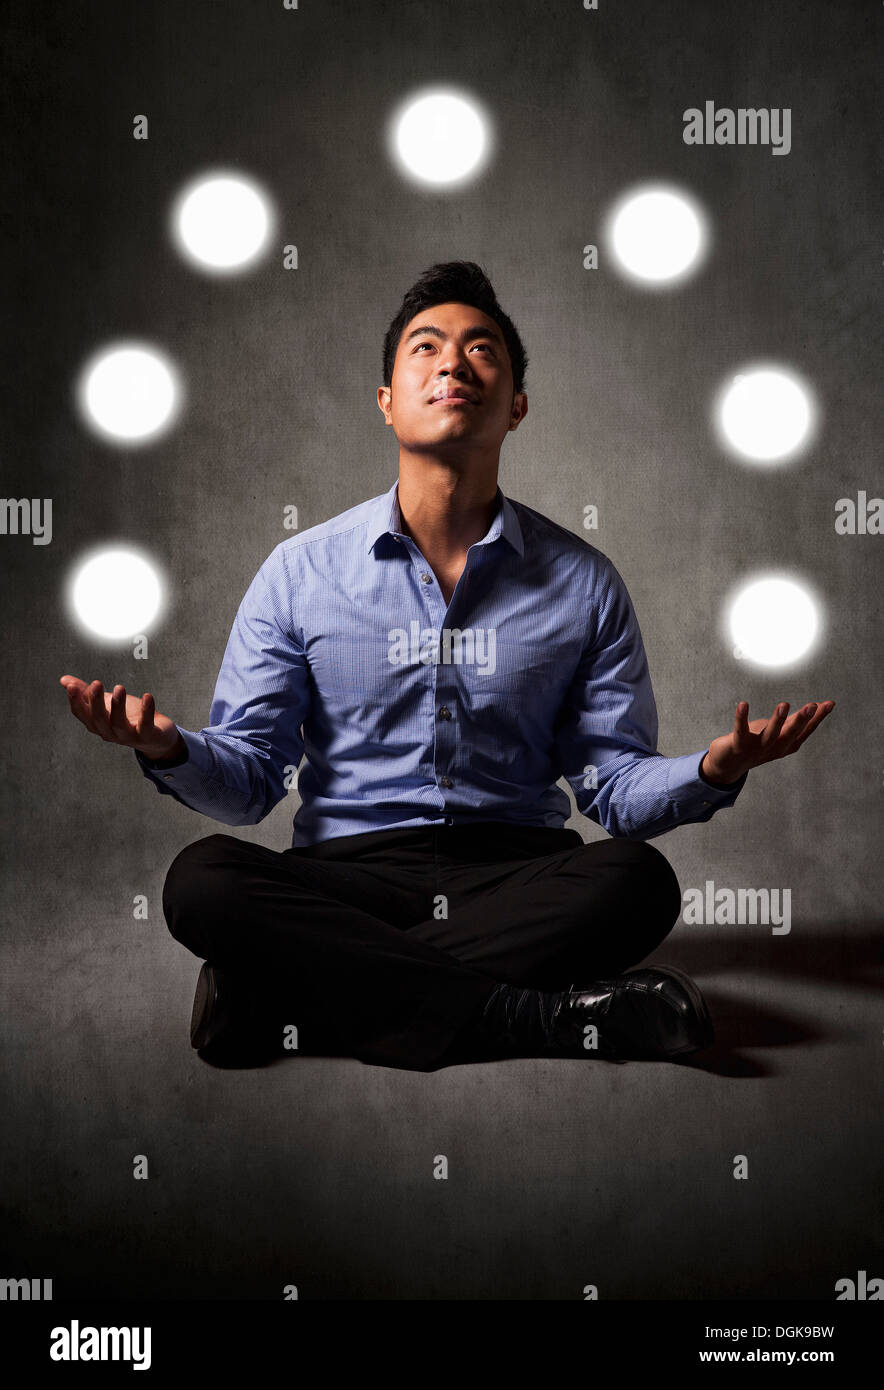 Businessman juggling balls of light Stock Photo